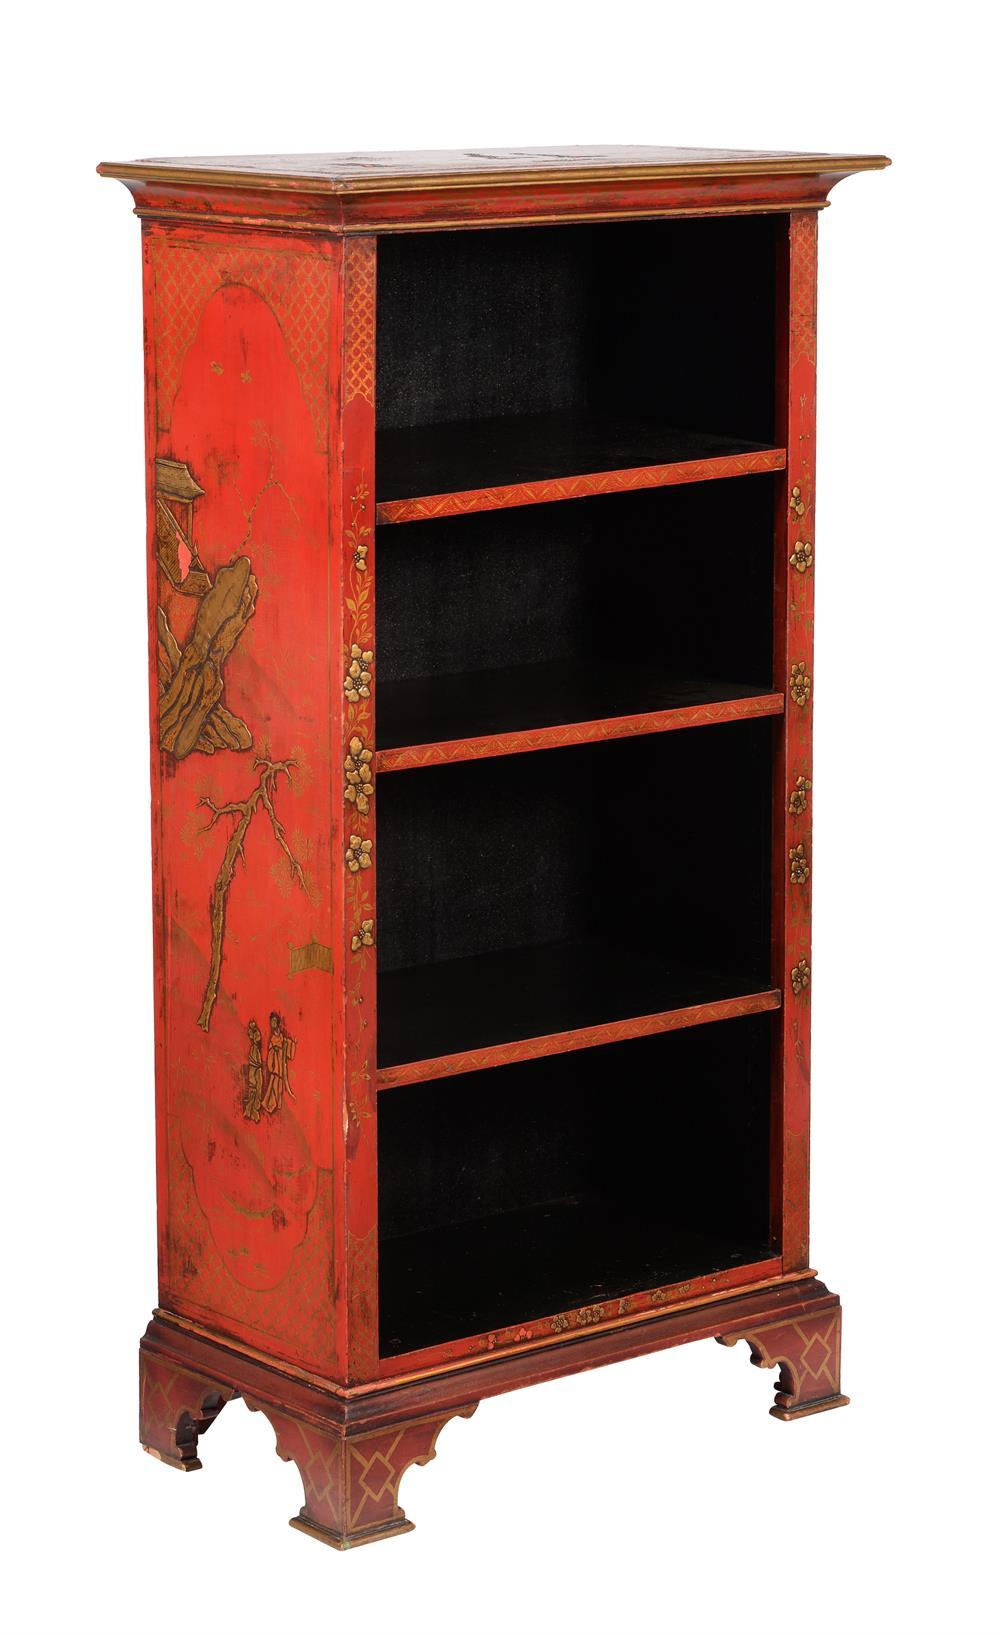 A red lacquer and gilt chinoiserie decorated open bookcase